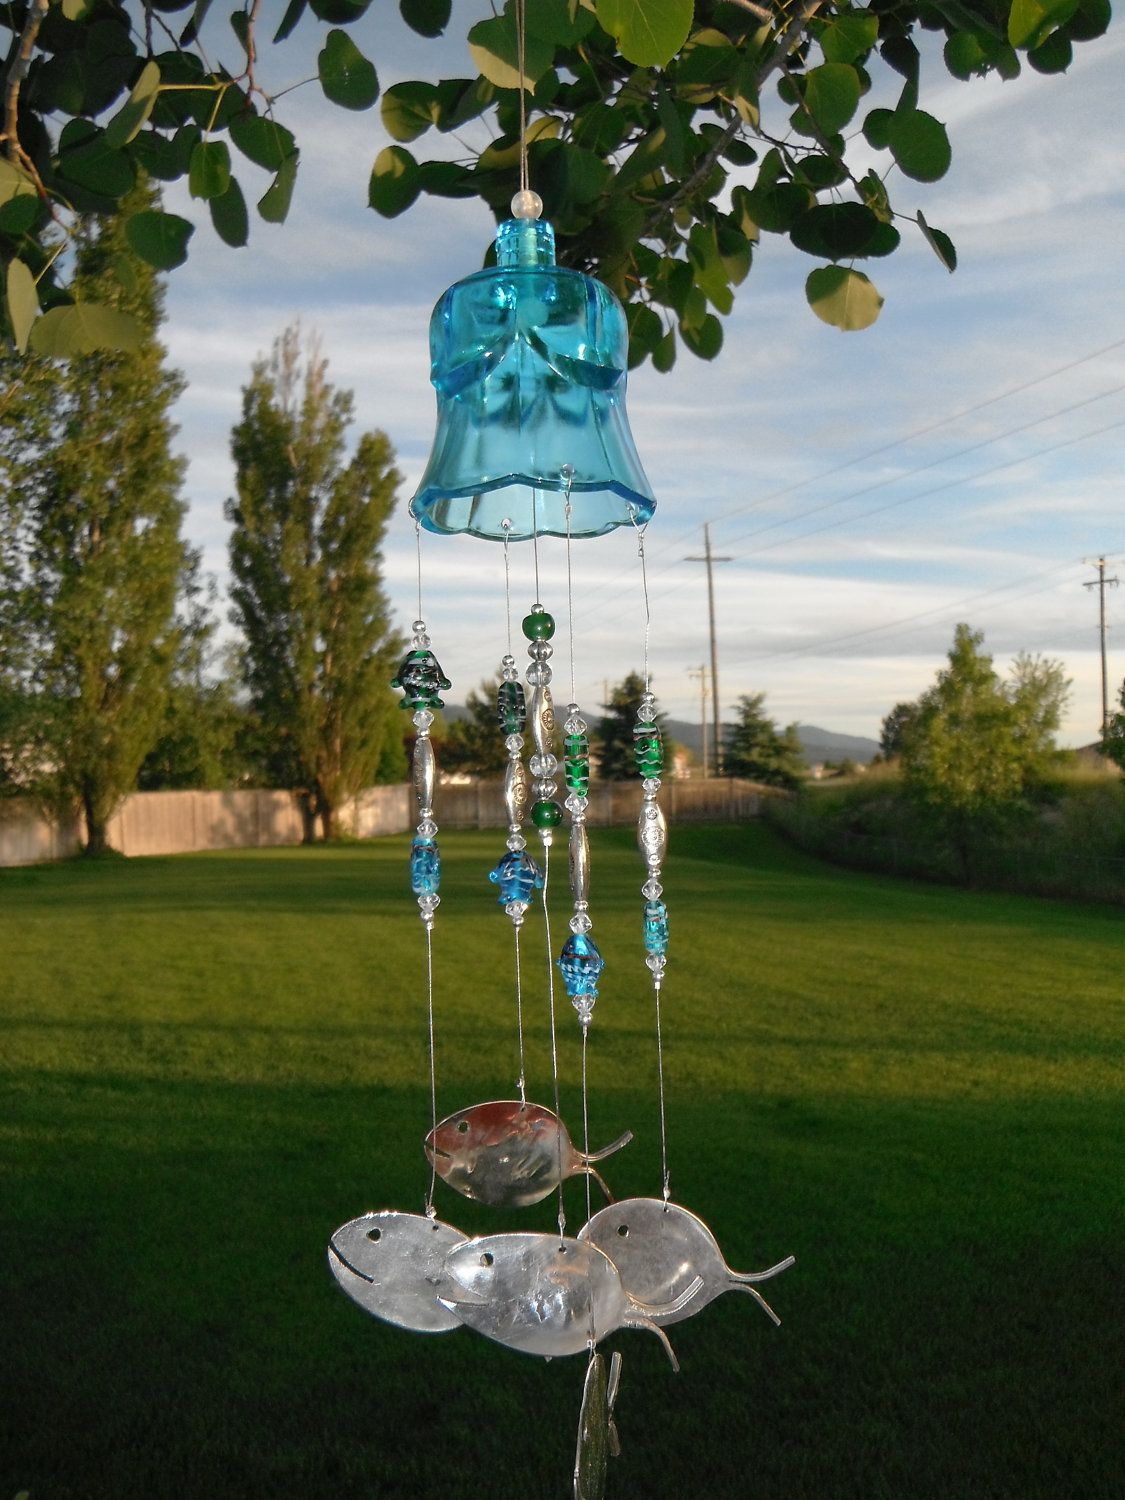 Glass Bell Fish Windchime with Antique Silverware.